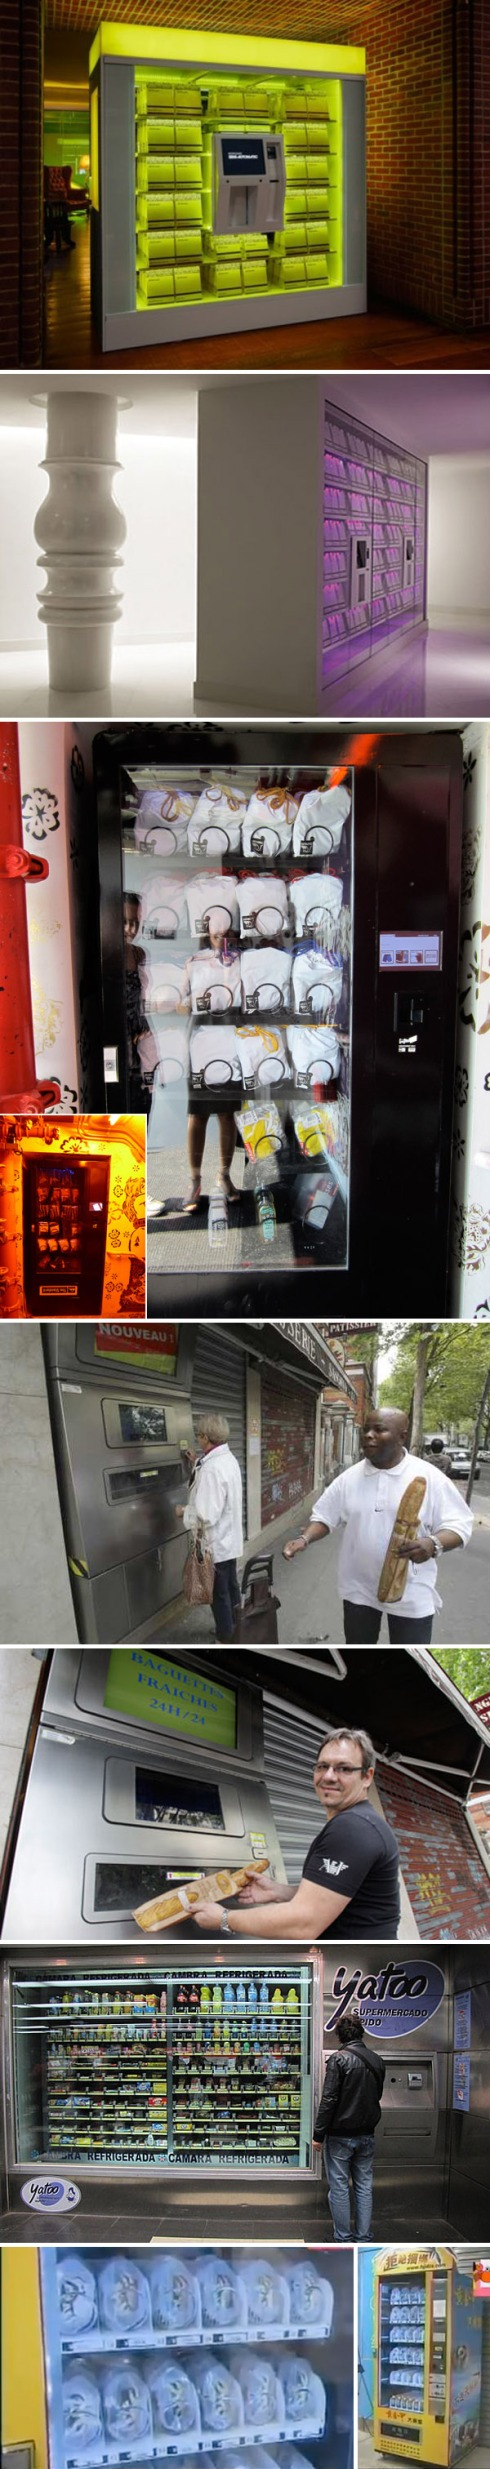 Cool Vending Machine, Fashion Week, Hudson Hotel, semi automatic, Mondrian, Baguettes